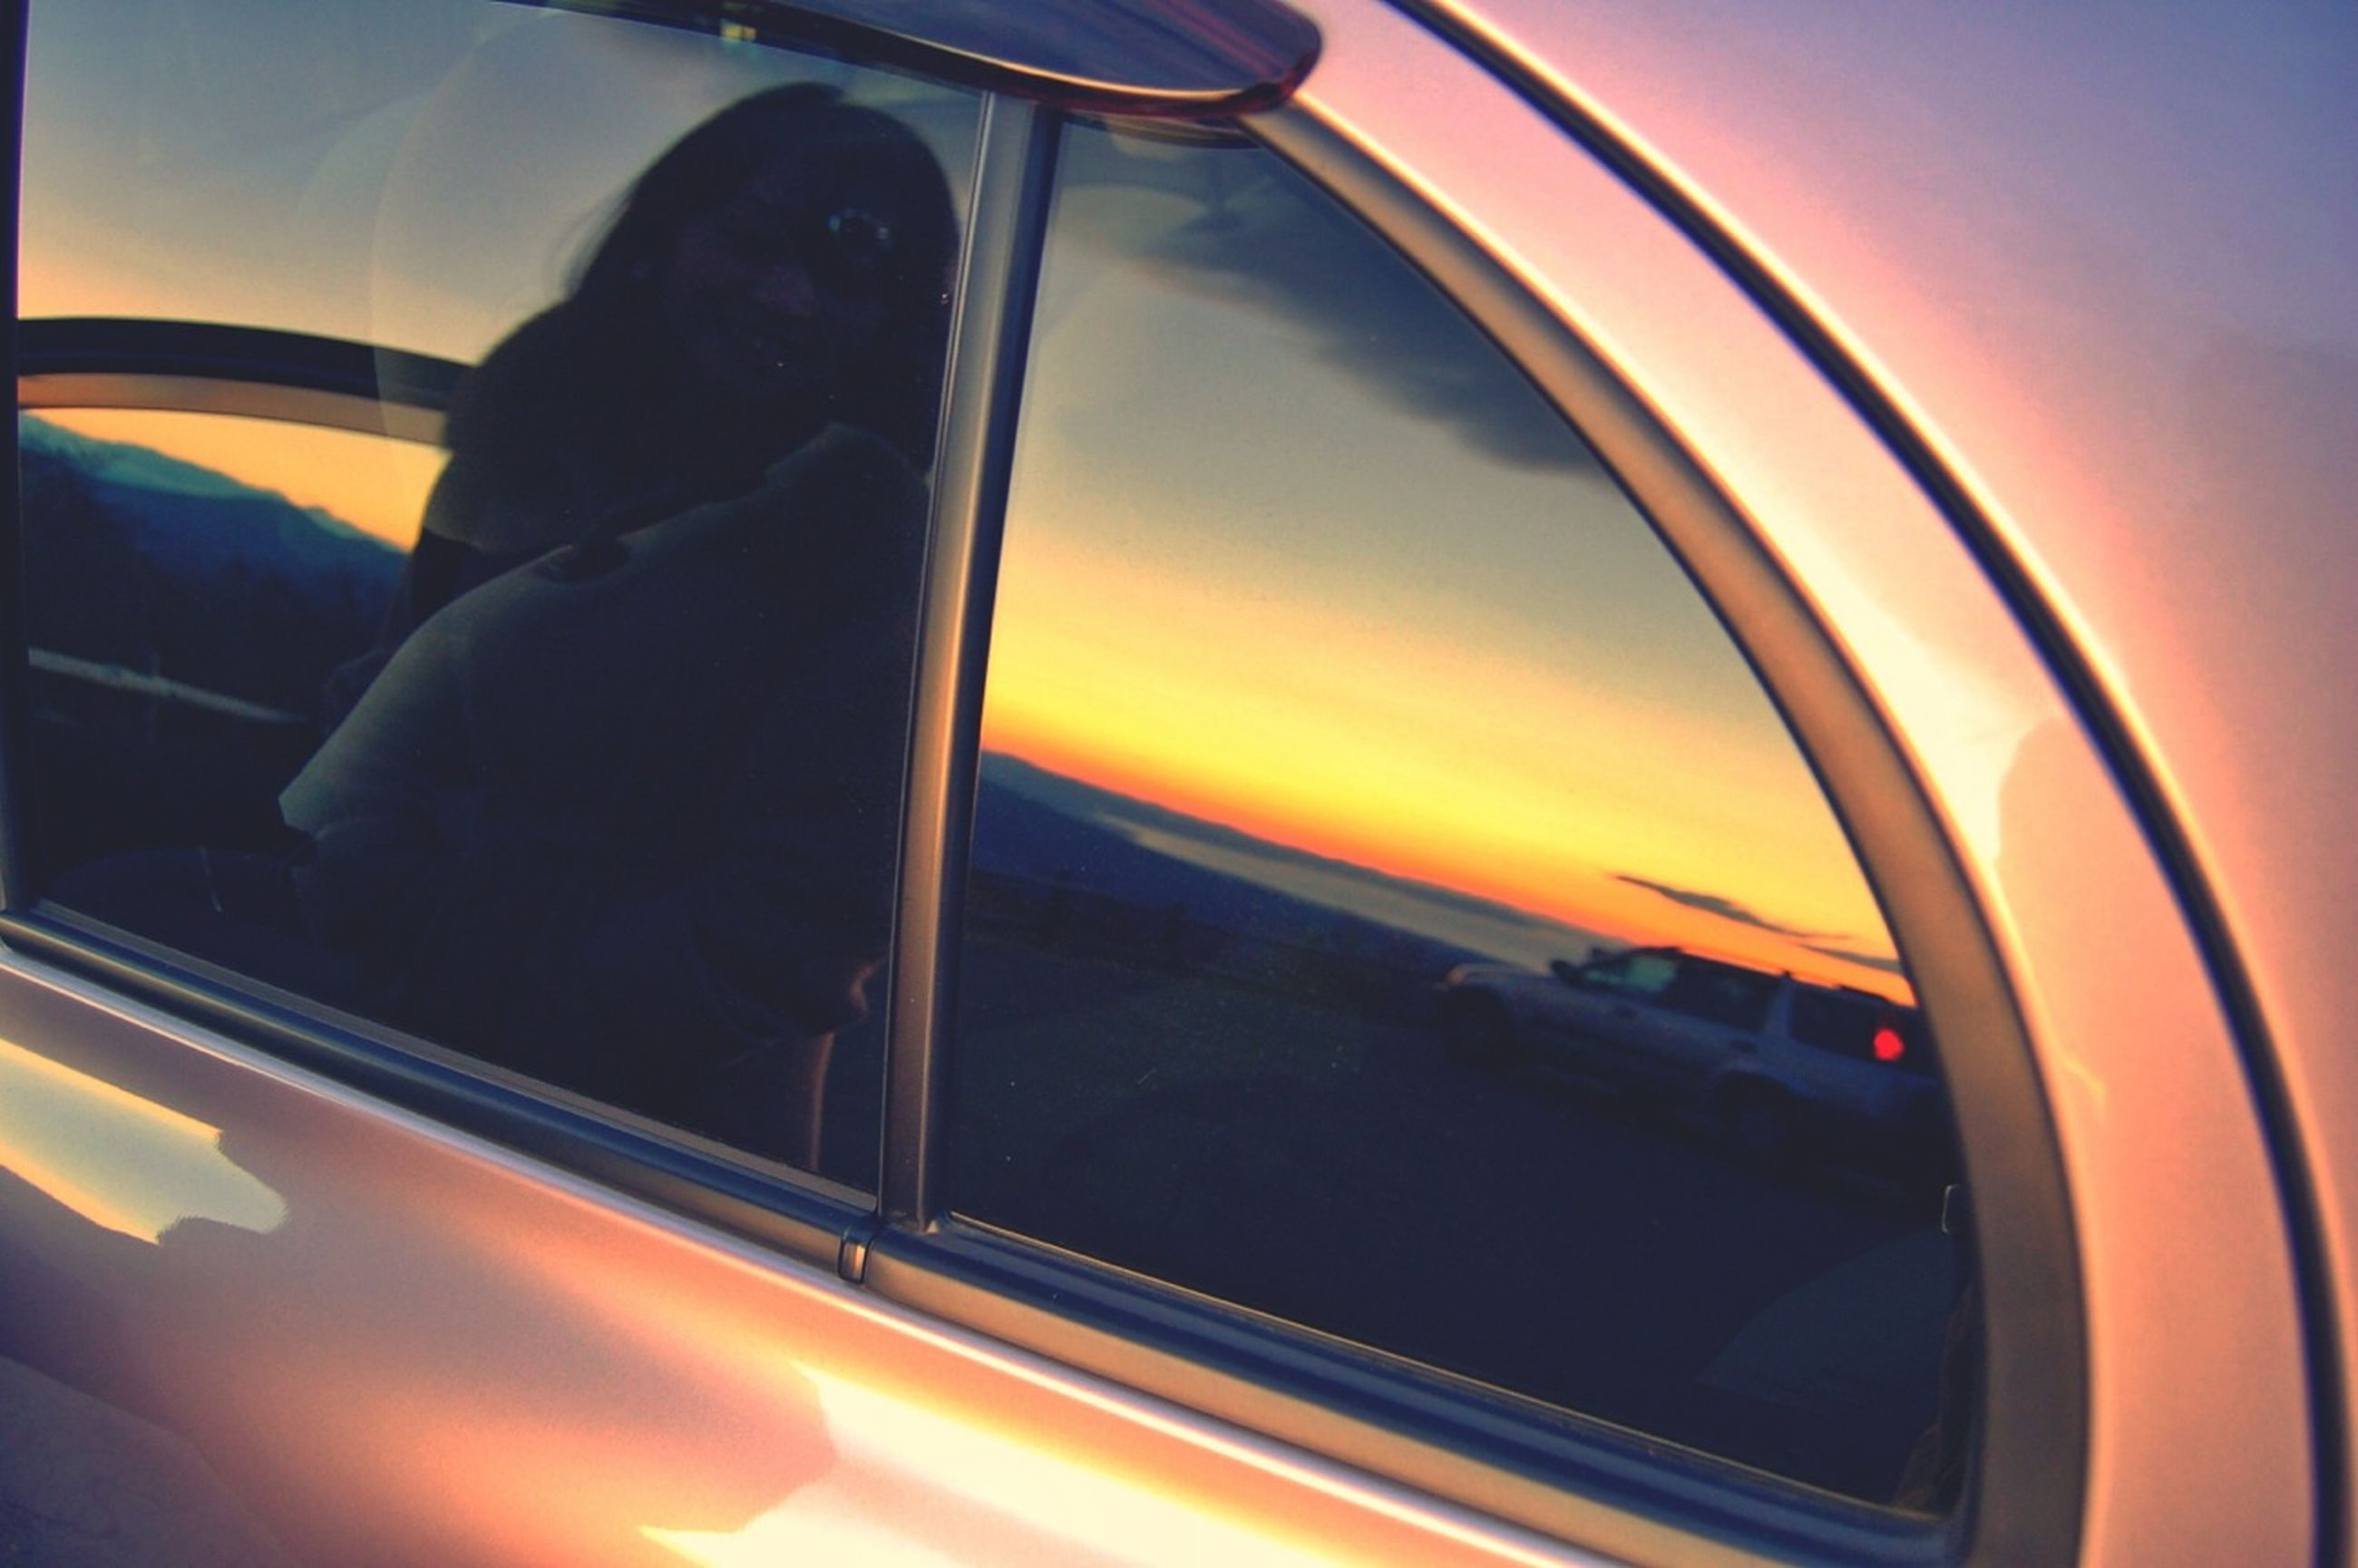 transportation, mode of transport, sunset, land vehicle, car, orange color, vehicle interior, window, glass - material, travel, on the move, transparent, part of, indoors, sky, sun, reflection, silhouette, public transportation, airplane